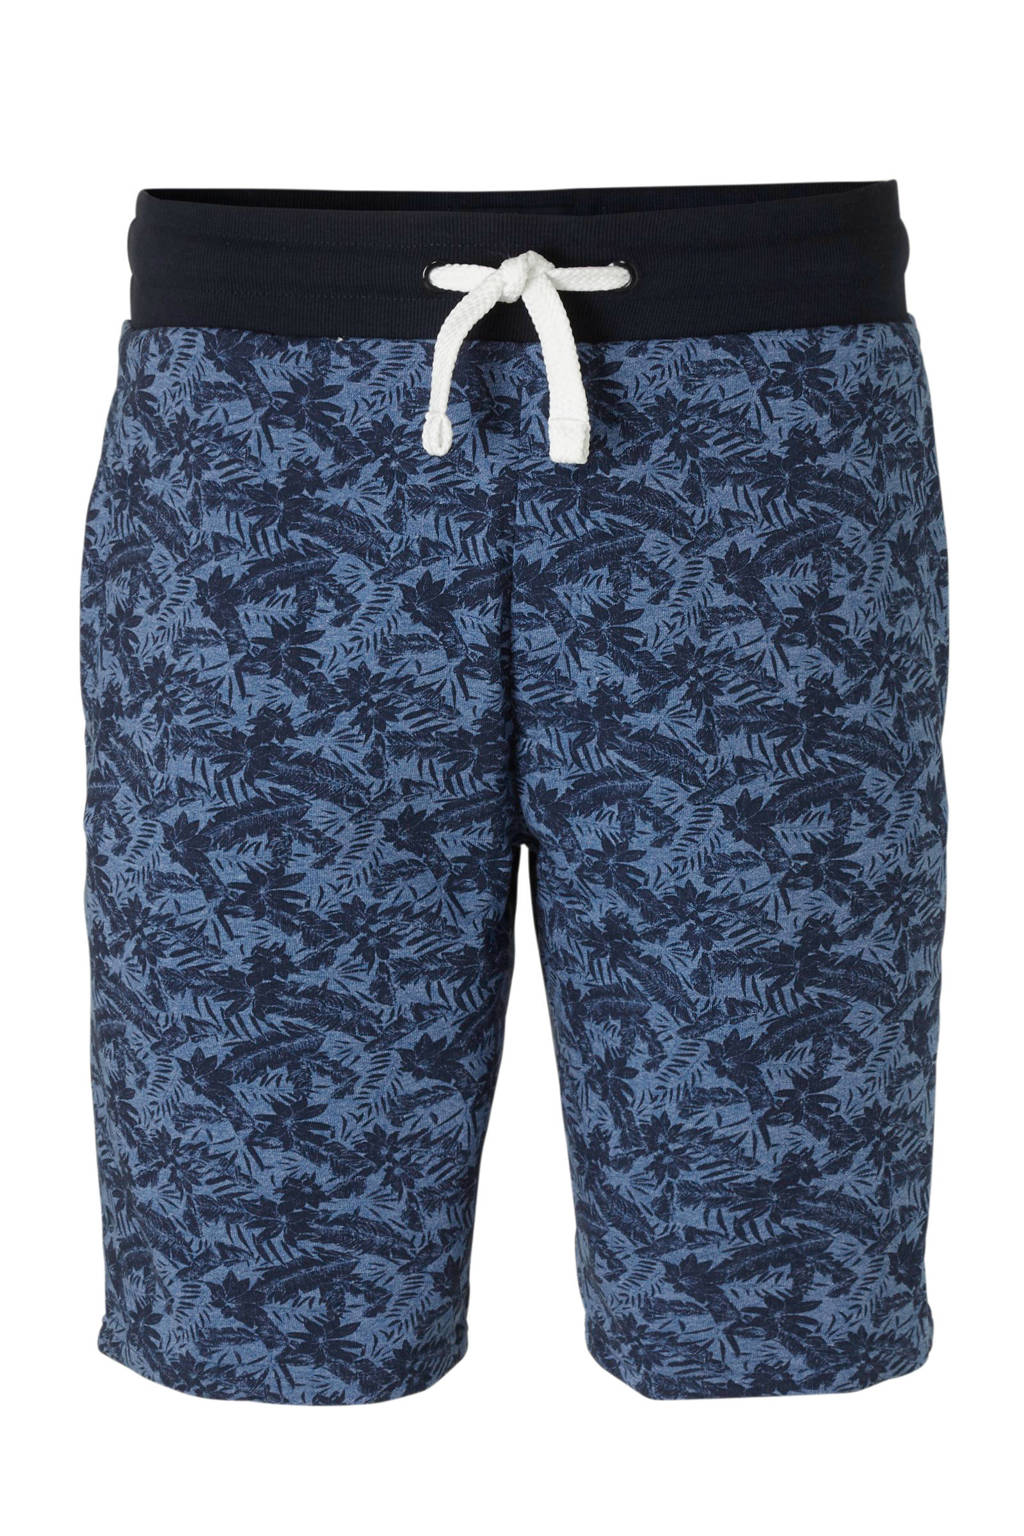 C&A XL Angelo Litrico sweatshort met all over print, Donkerblauw